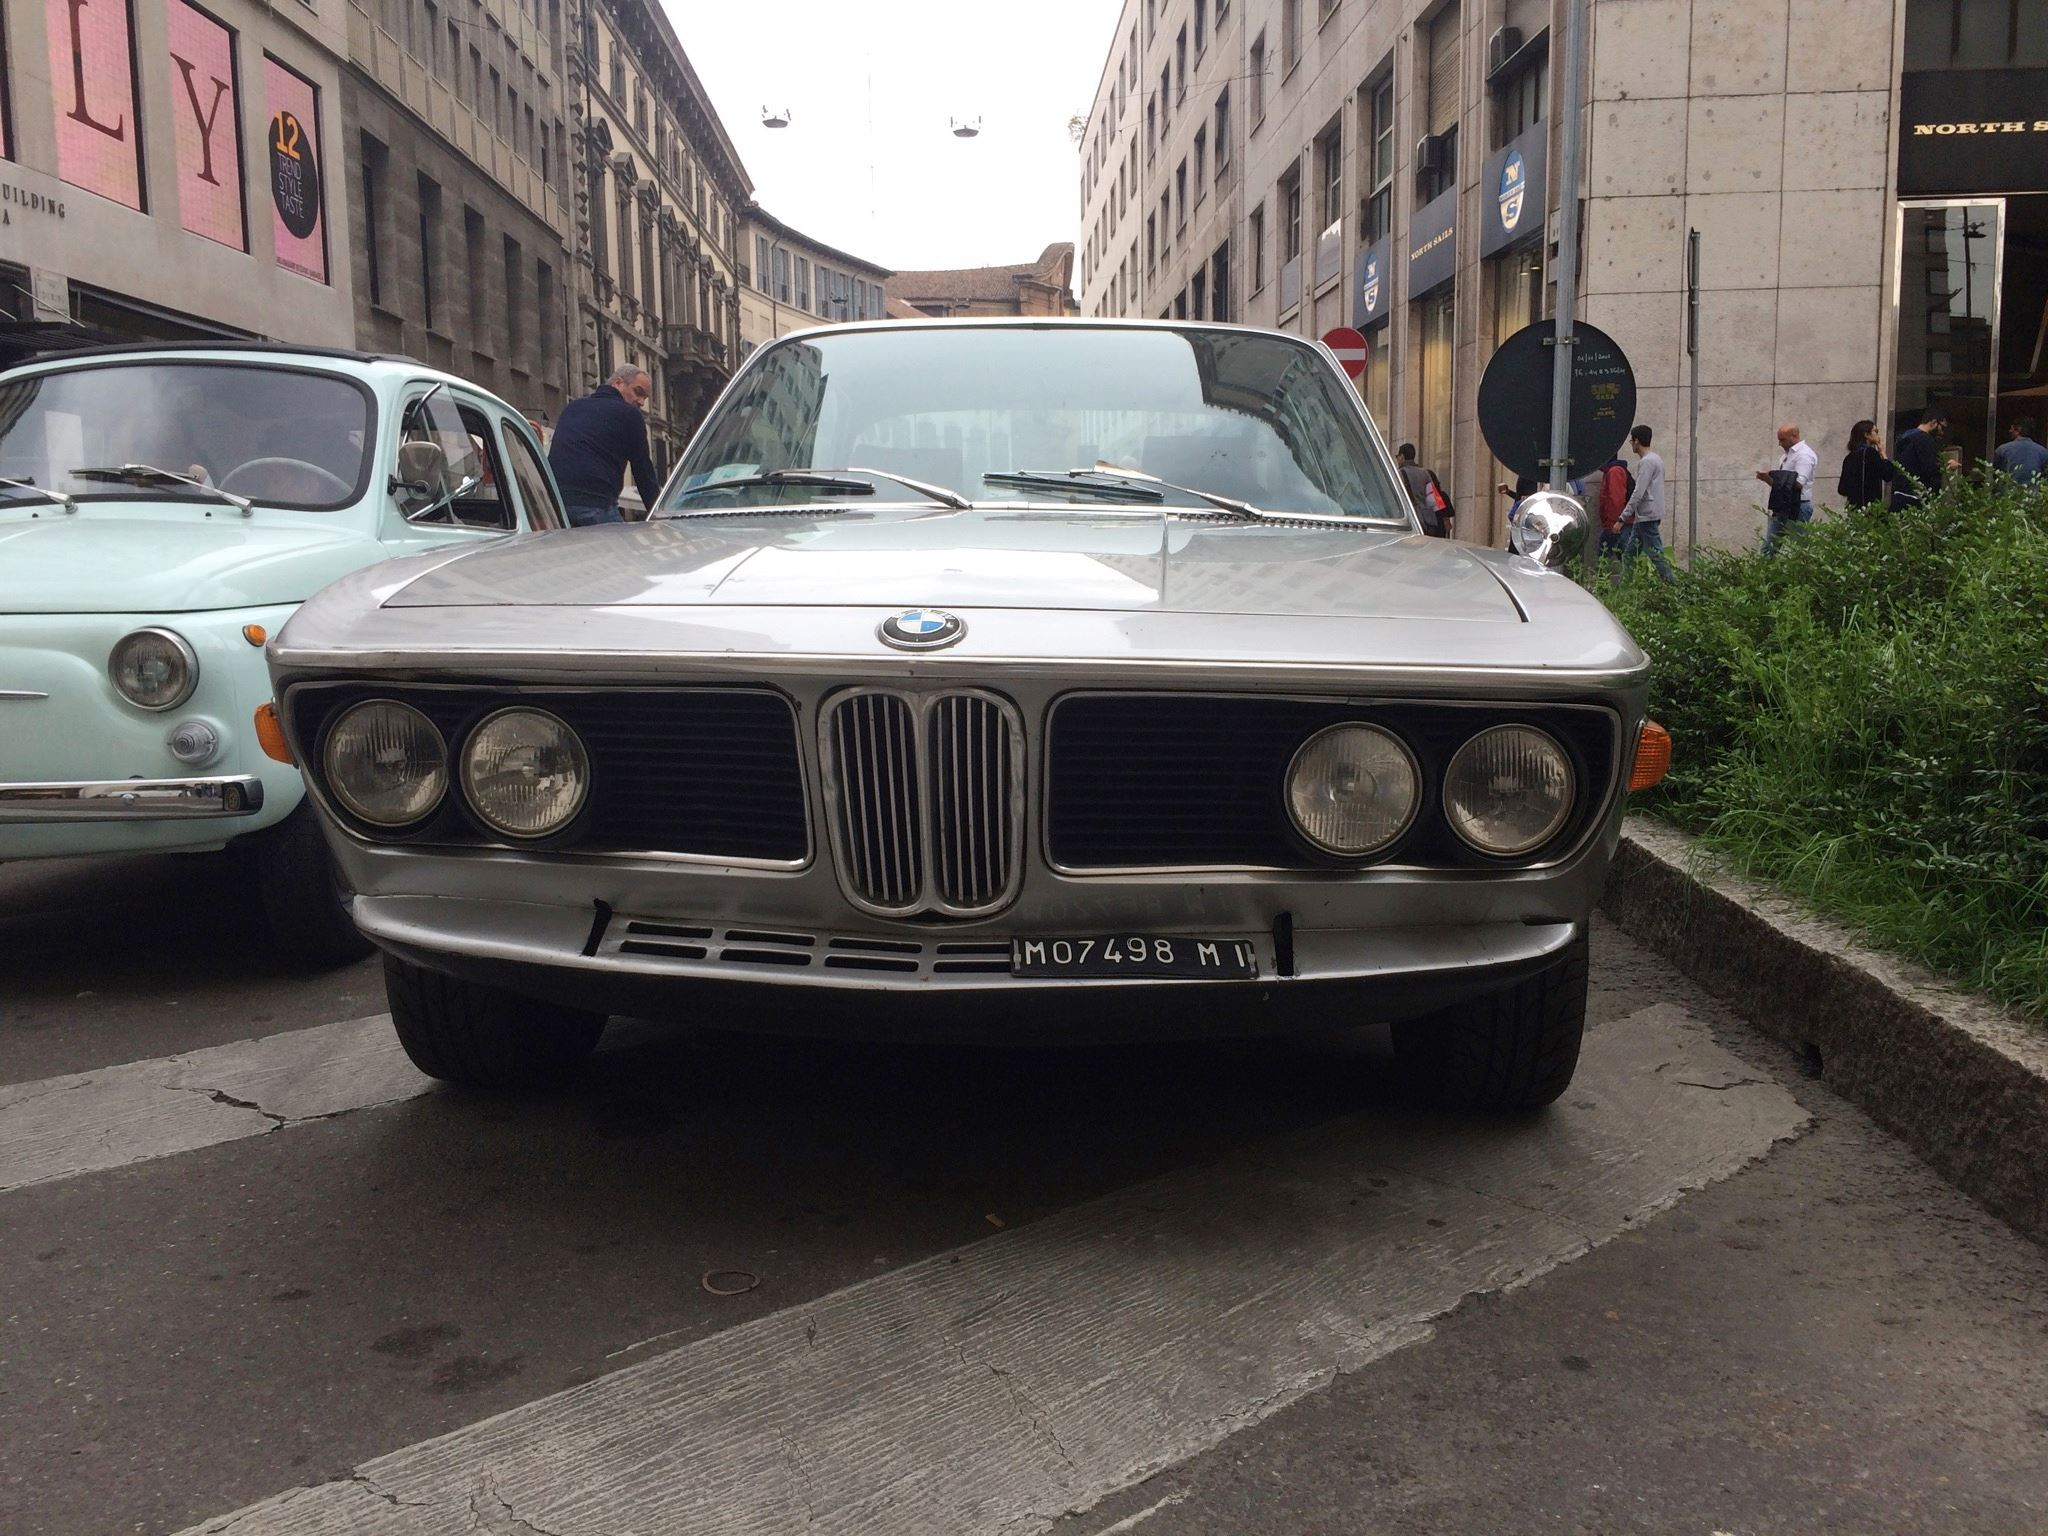 VWVortex.com - Saw a nice old BMW in Milan, was this model available ...